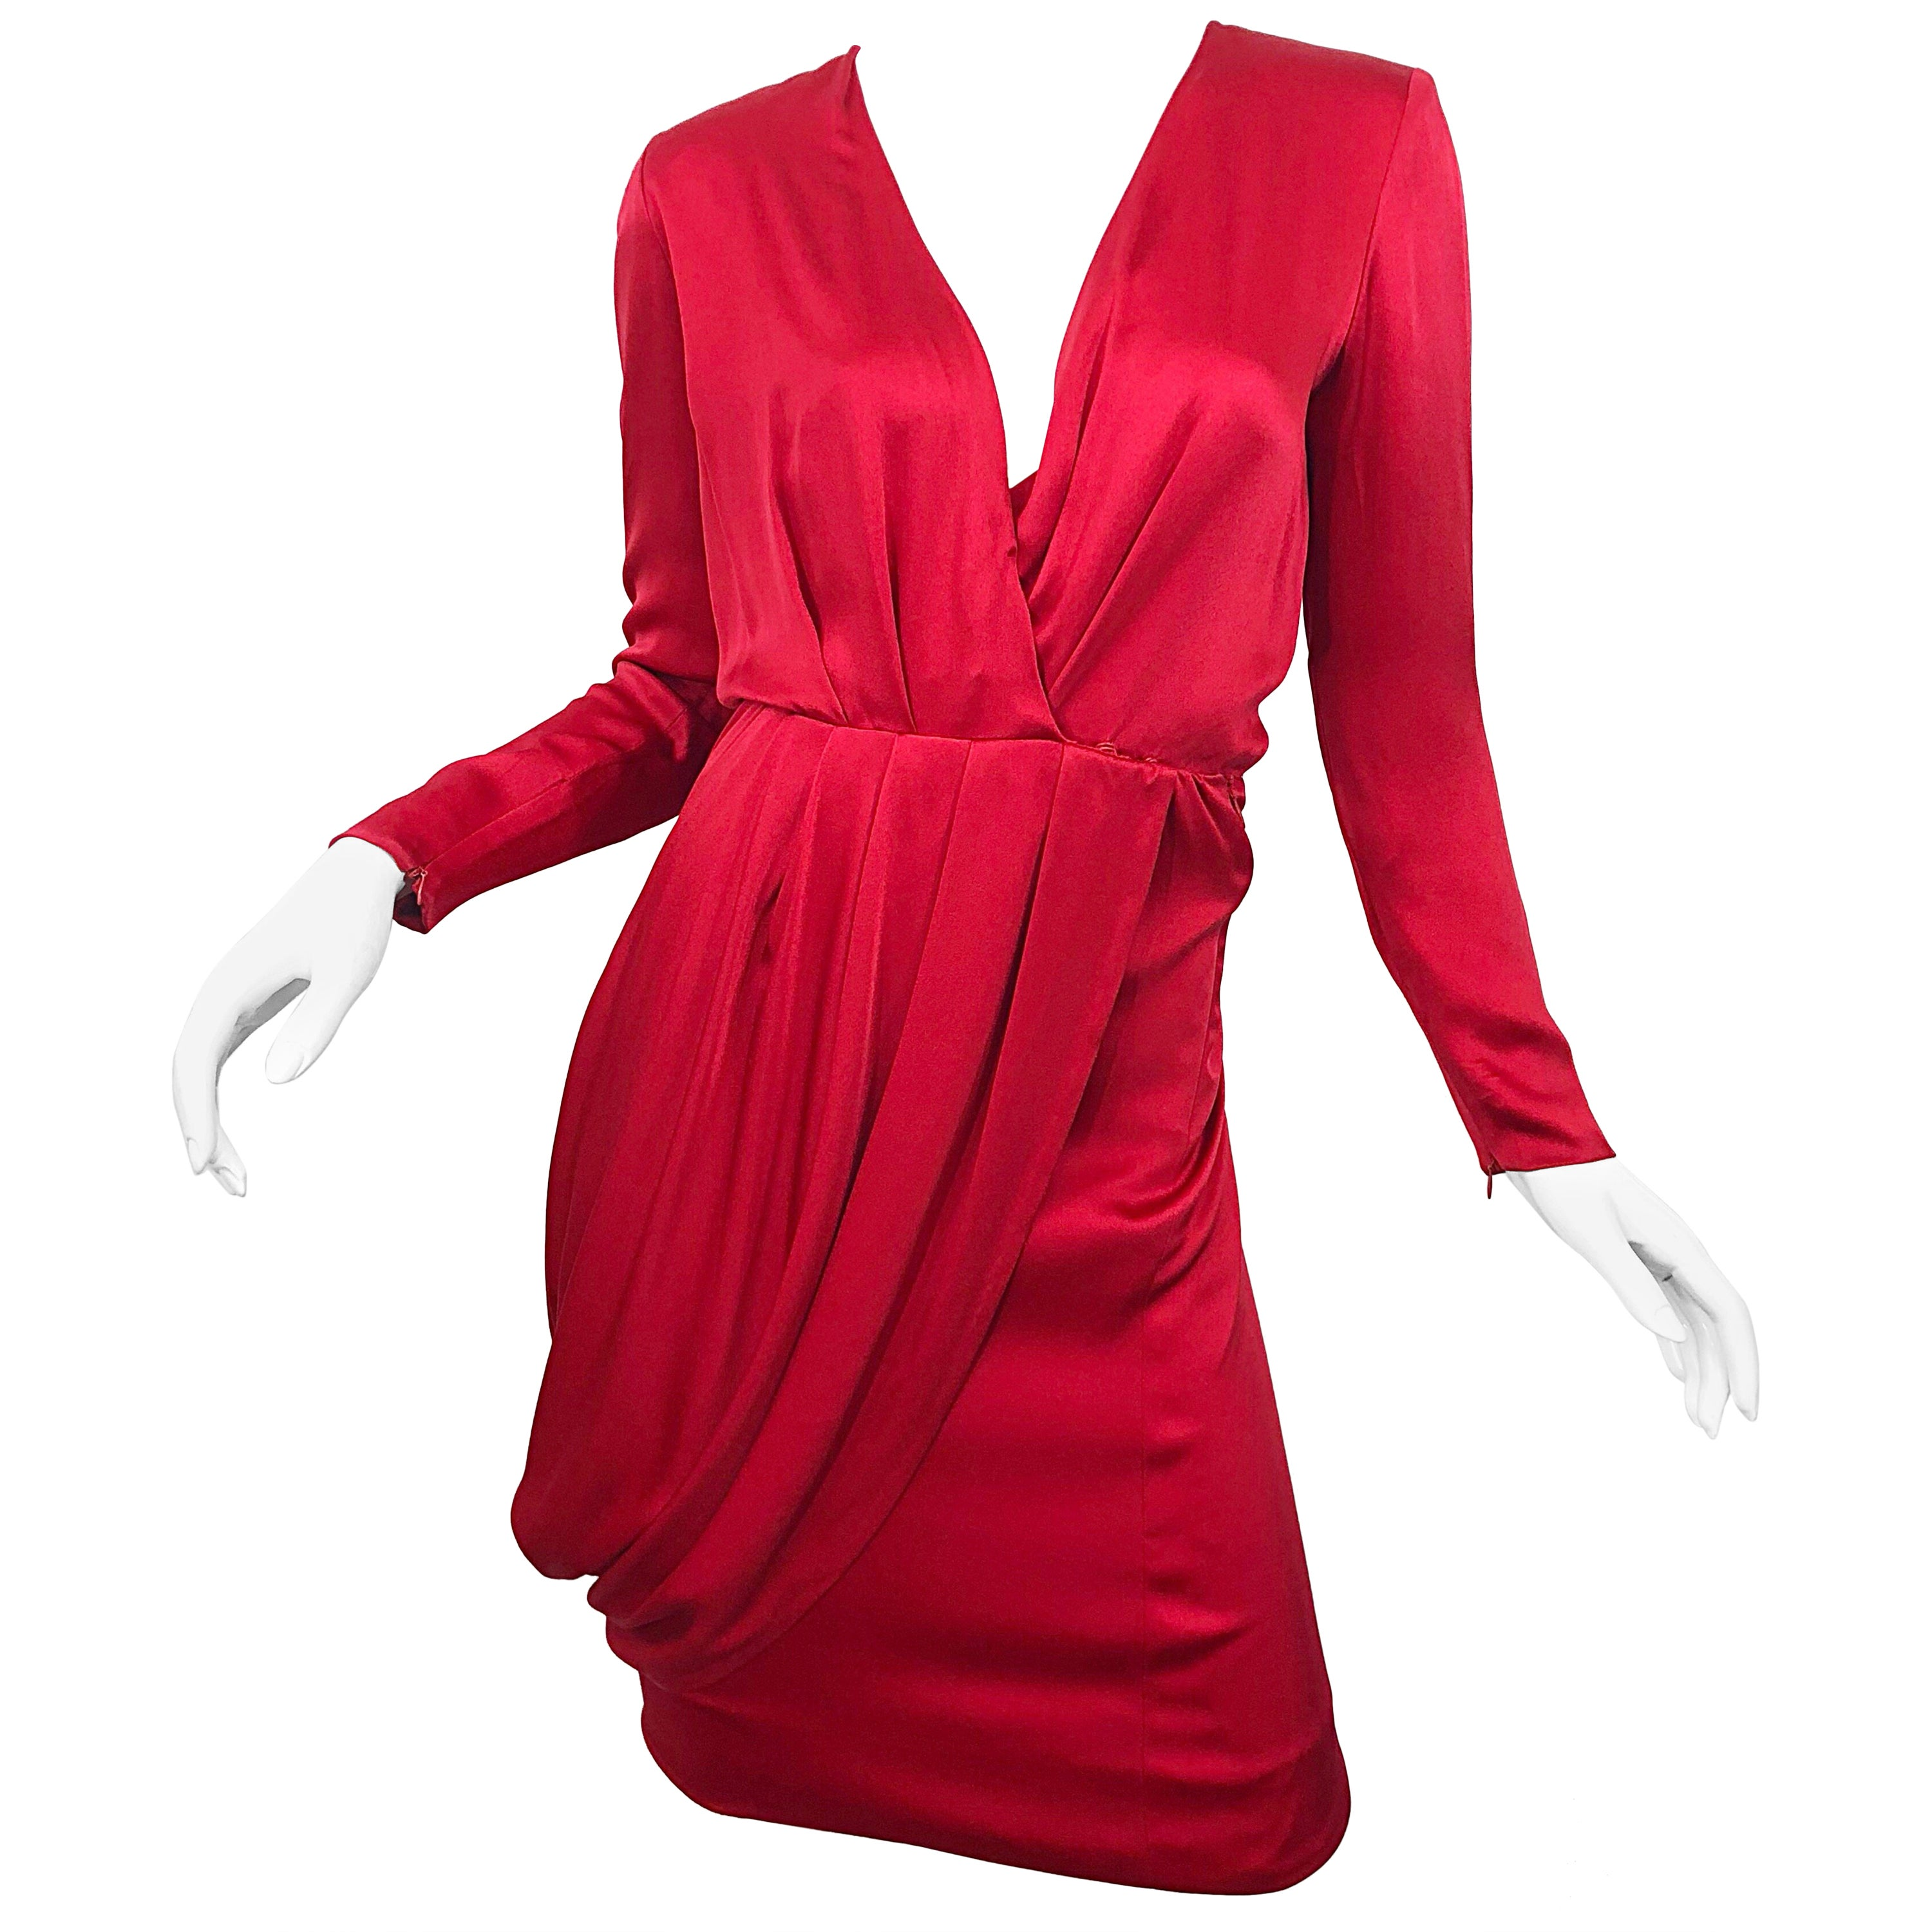 Vintage Givenchy Couture by Alexander McQueen Sz 36 Lipstick Red Silk Cape Dress